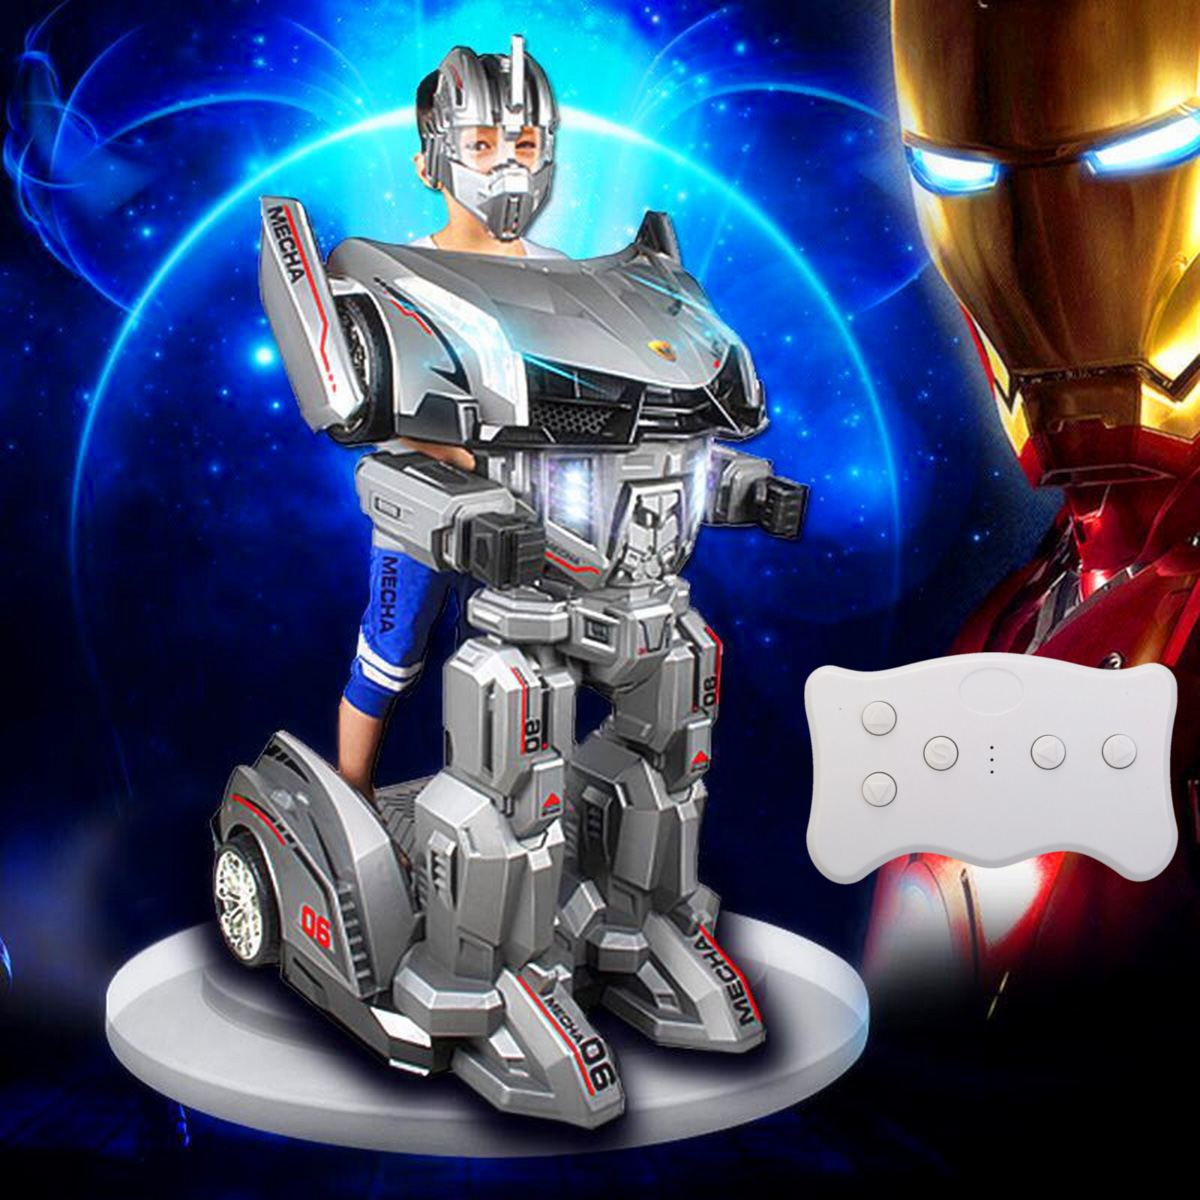 LEORY RC Manned Movable Humanoid Robot Cars Transformer With LED Headlight 25W Motor For Kids ChildrenDay Gift Amusement Park